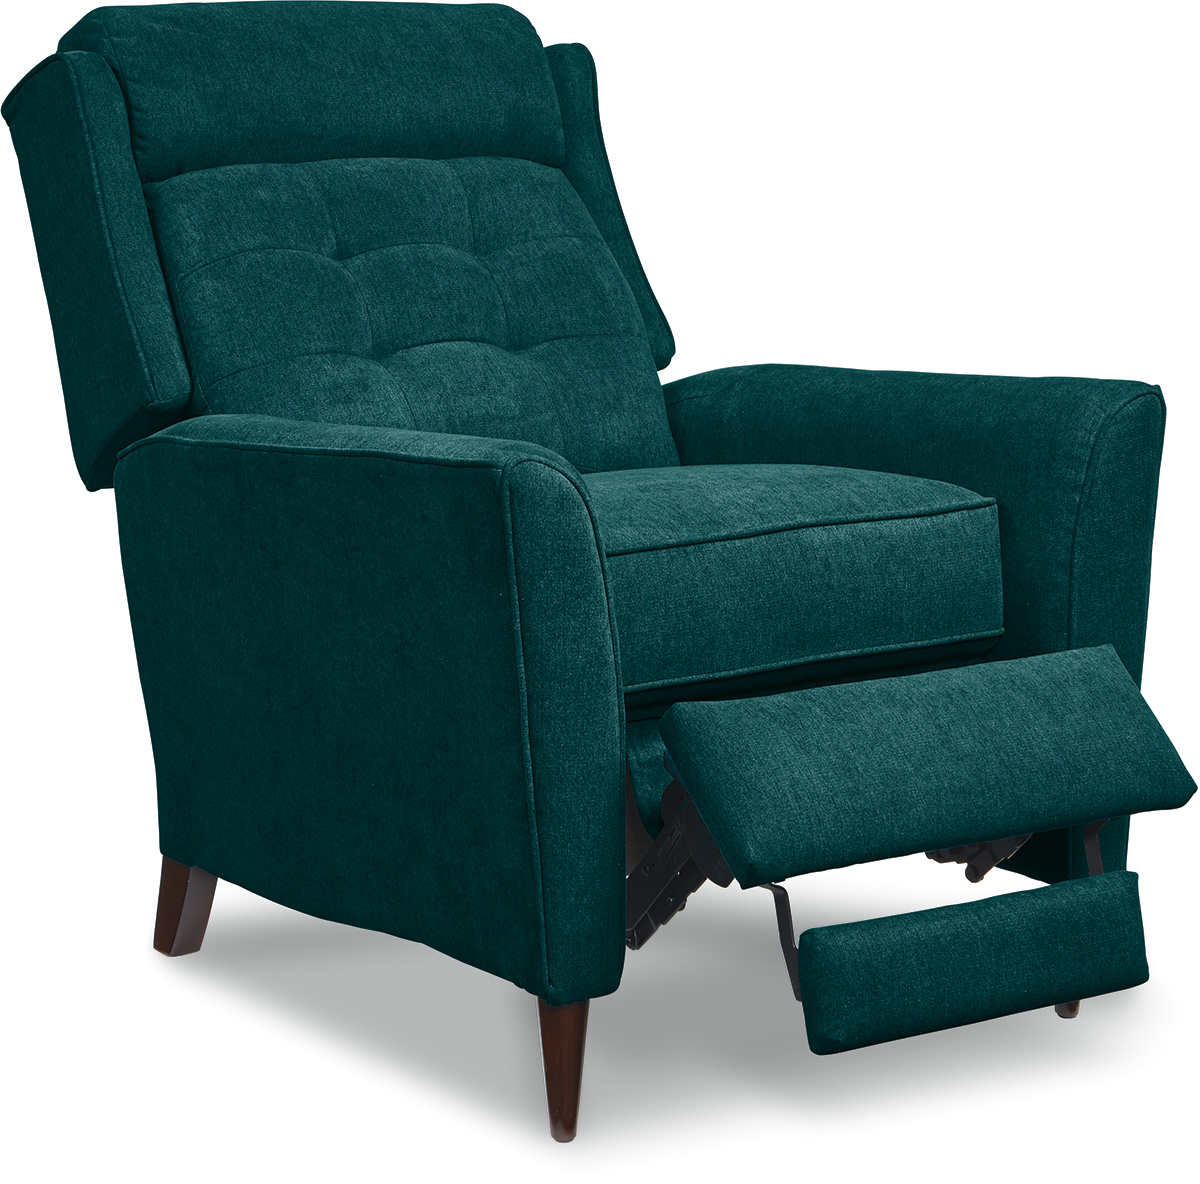 Brentwood Reclining Chair